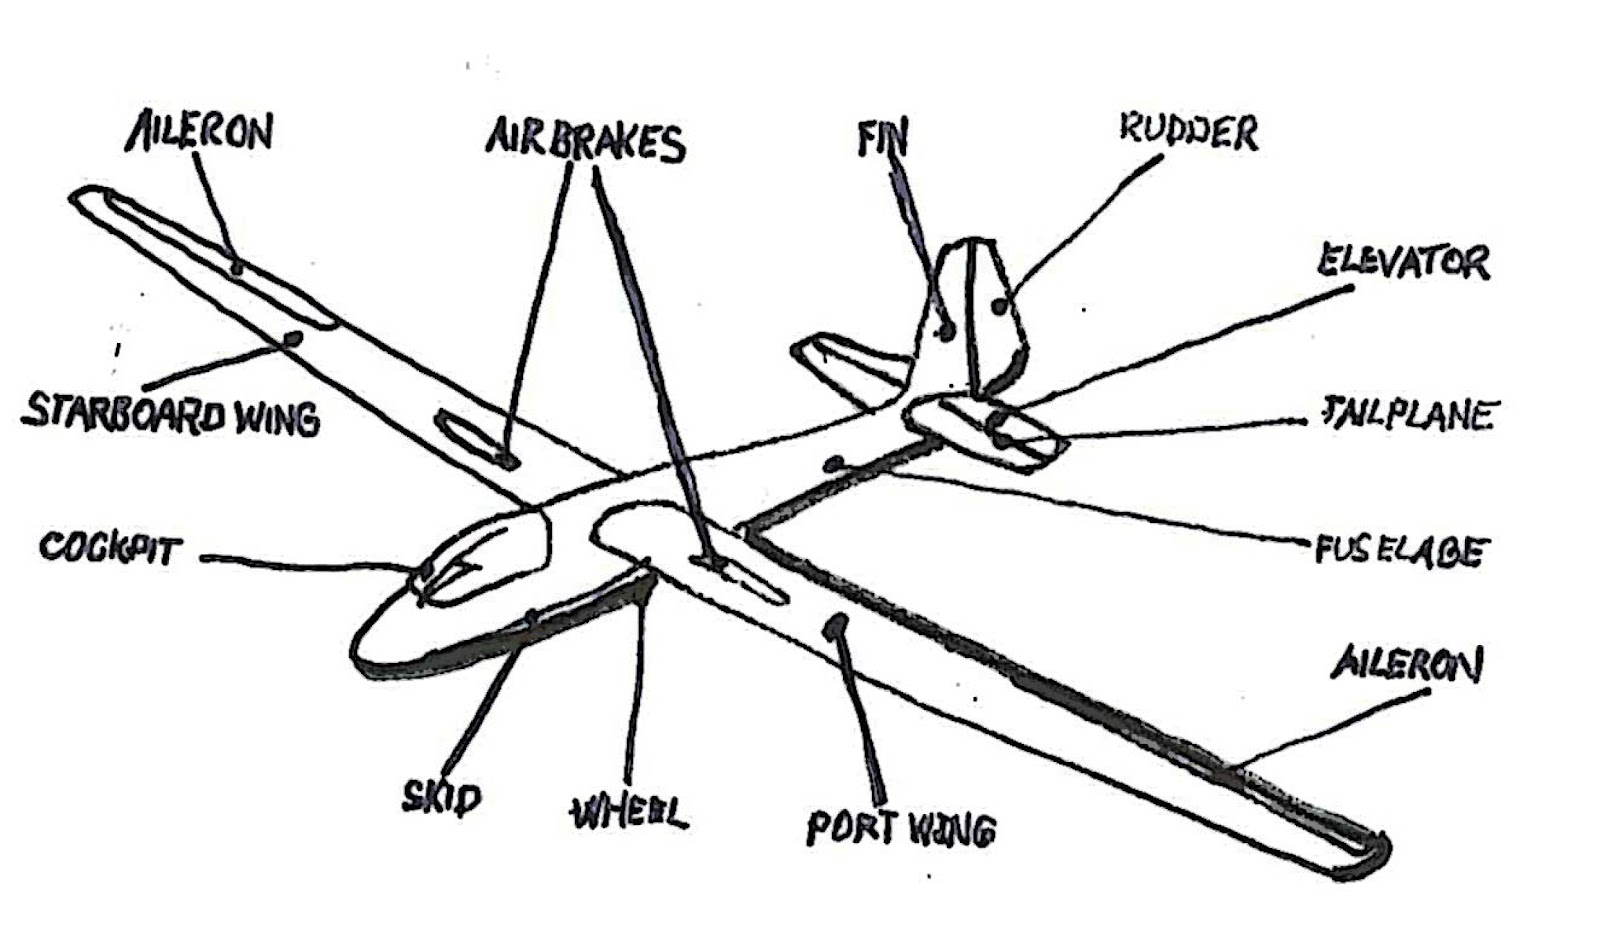 Paper Airplane Diagram Of Parts Car Stereo Installation With No Engine Free Image For